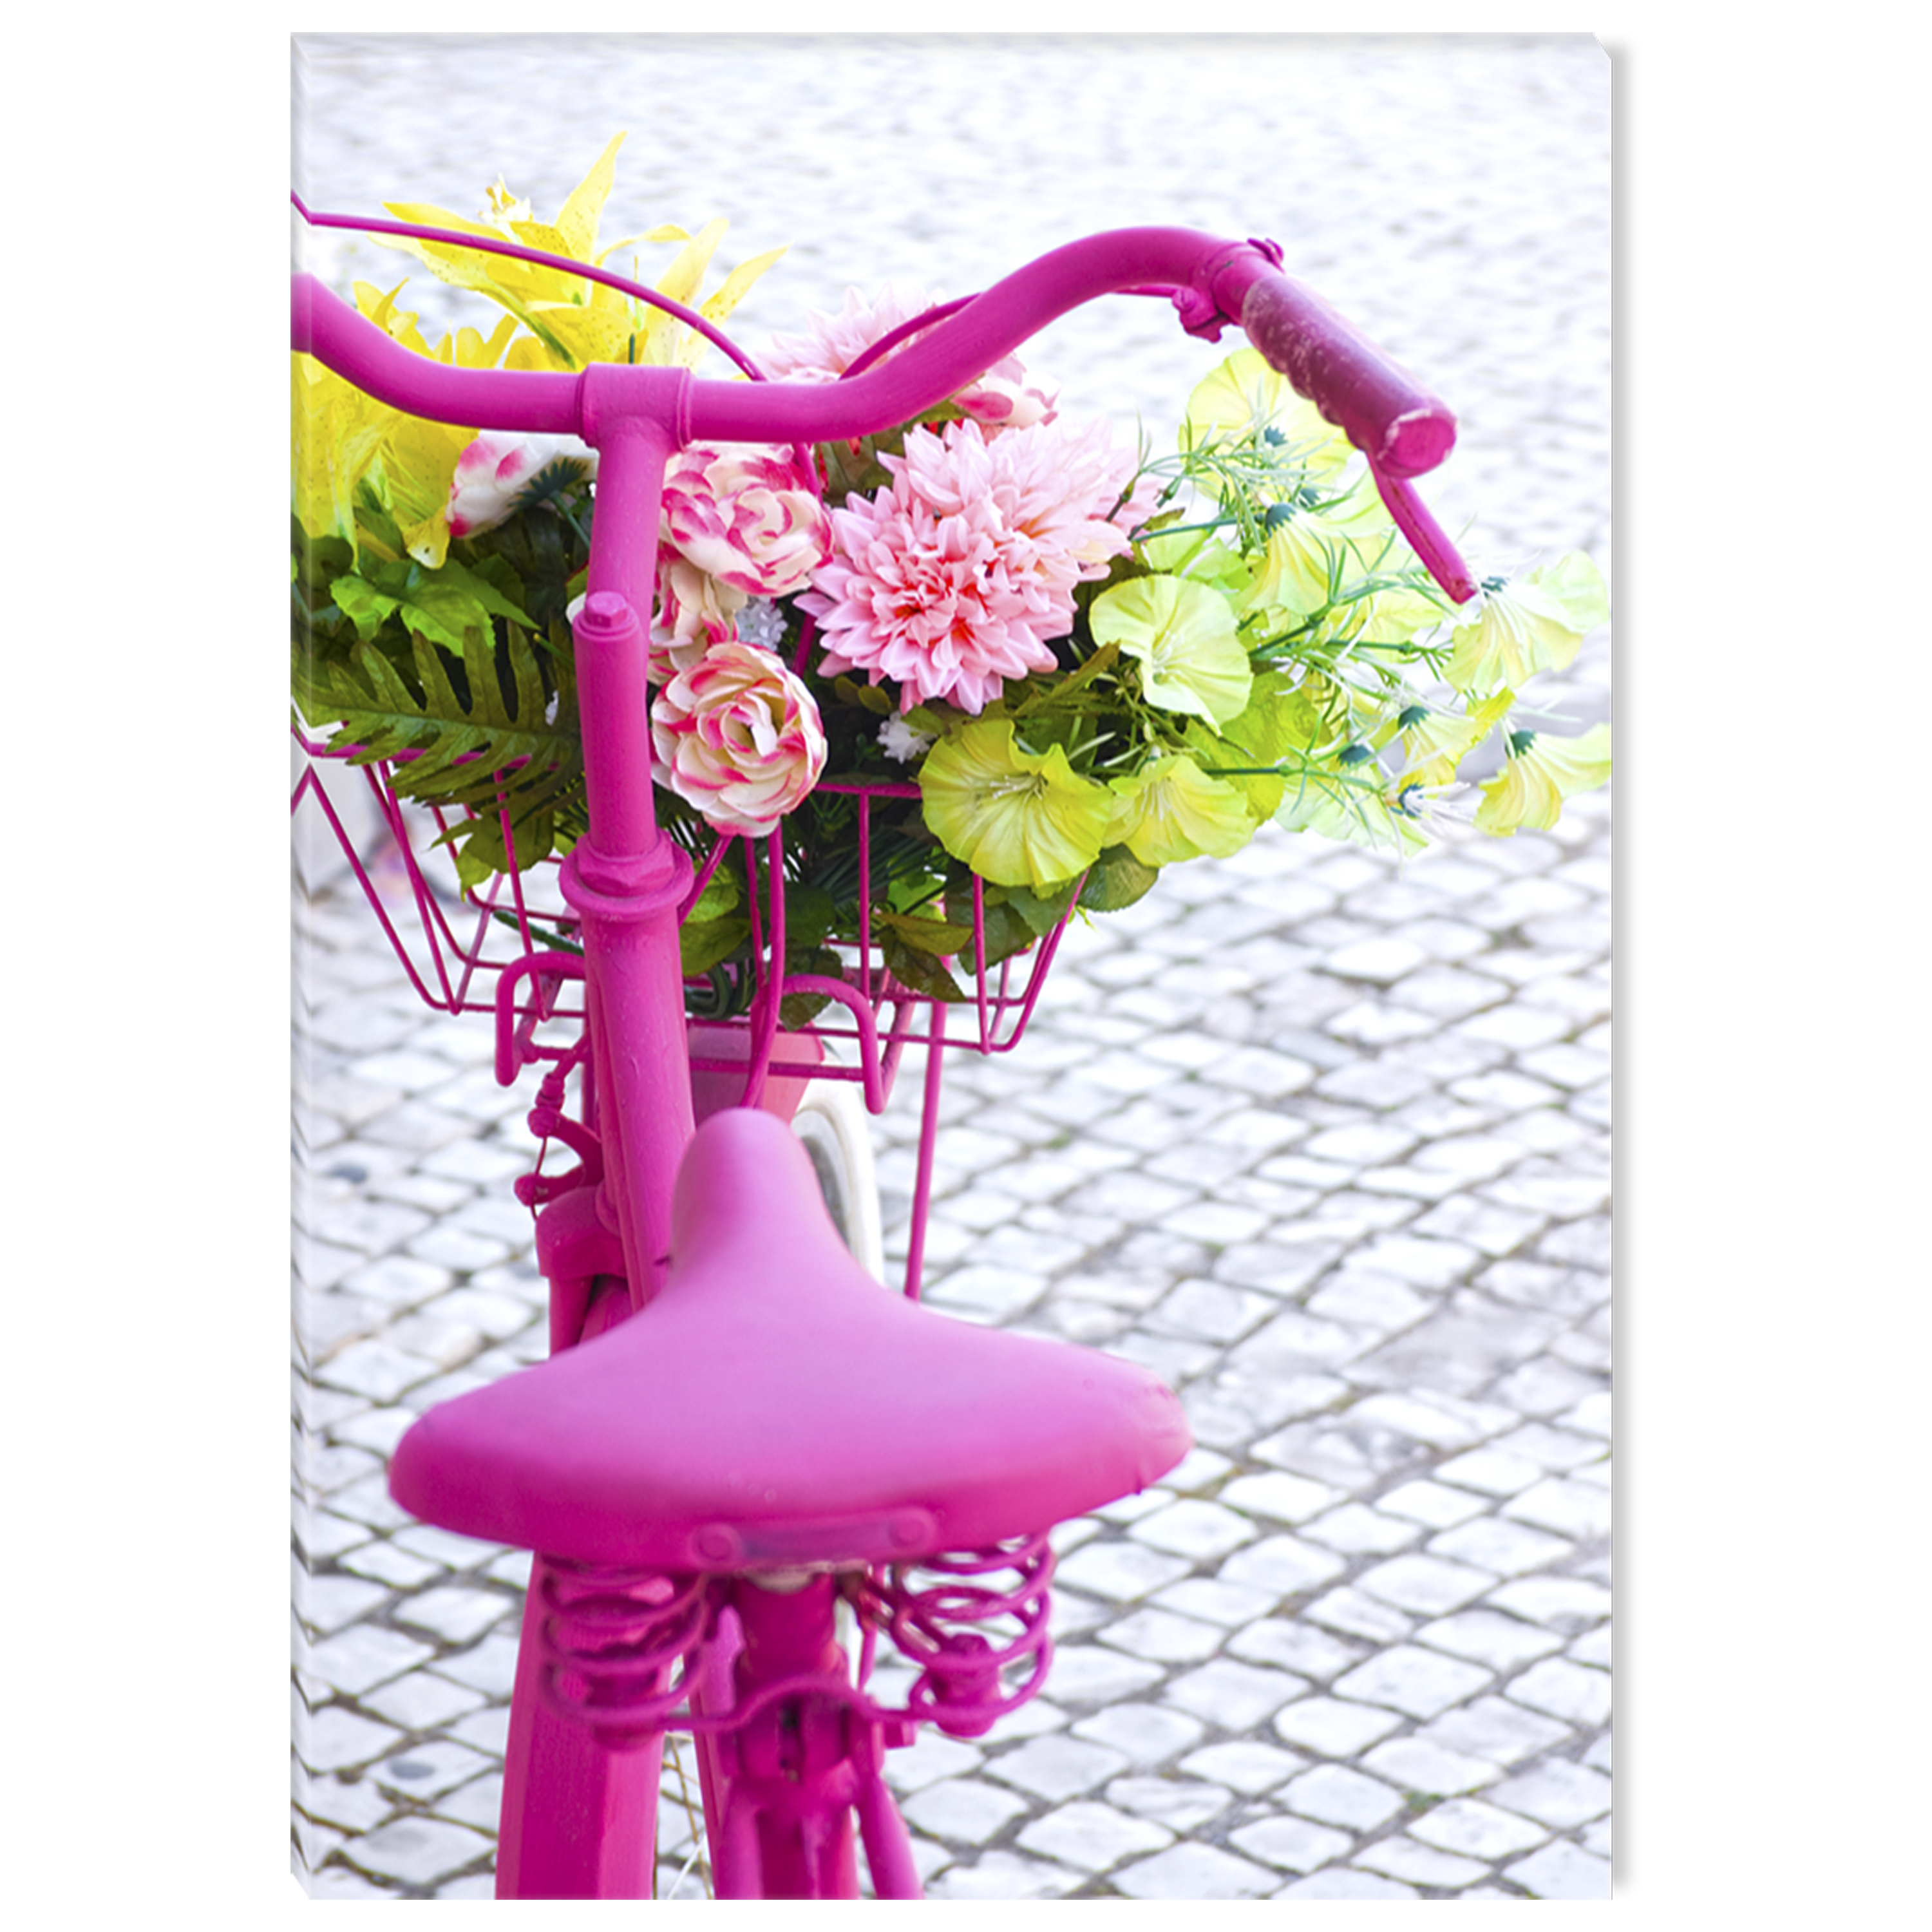 Startonight Canvas Wall Art Pink Bike USA Design for Home Decor, Illuminated Love Painting Modern Canvas Artwork Framed Ready to Hang Medium 23.62 X 35.43 inch